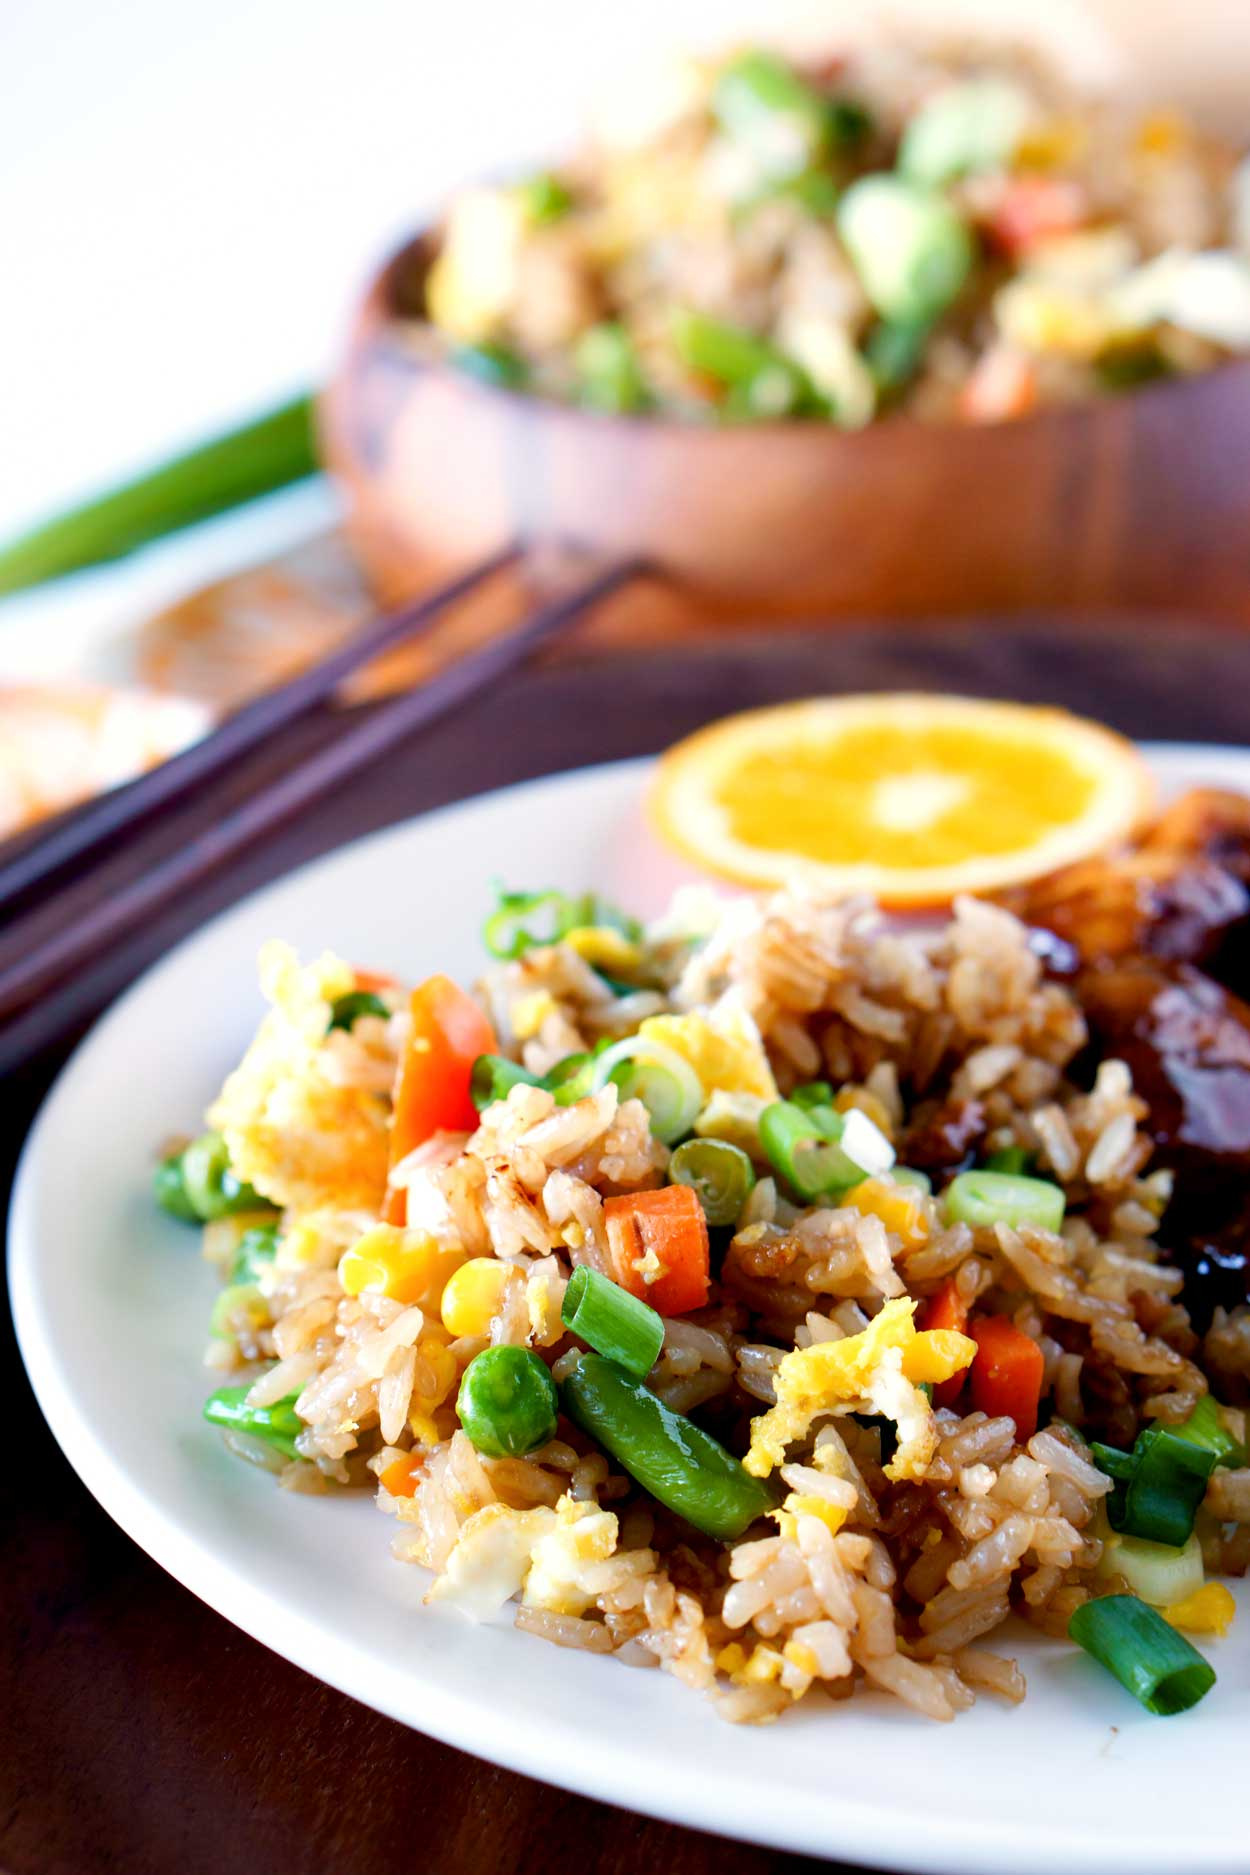 Fried Rice served with Orange Chicken